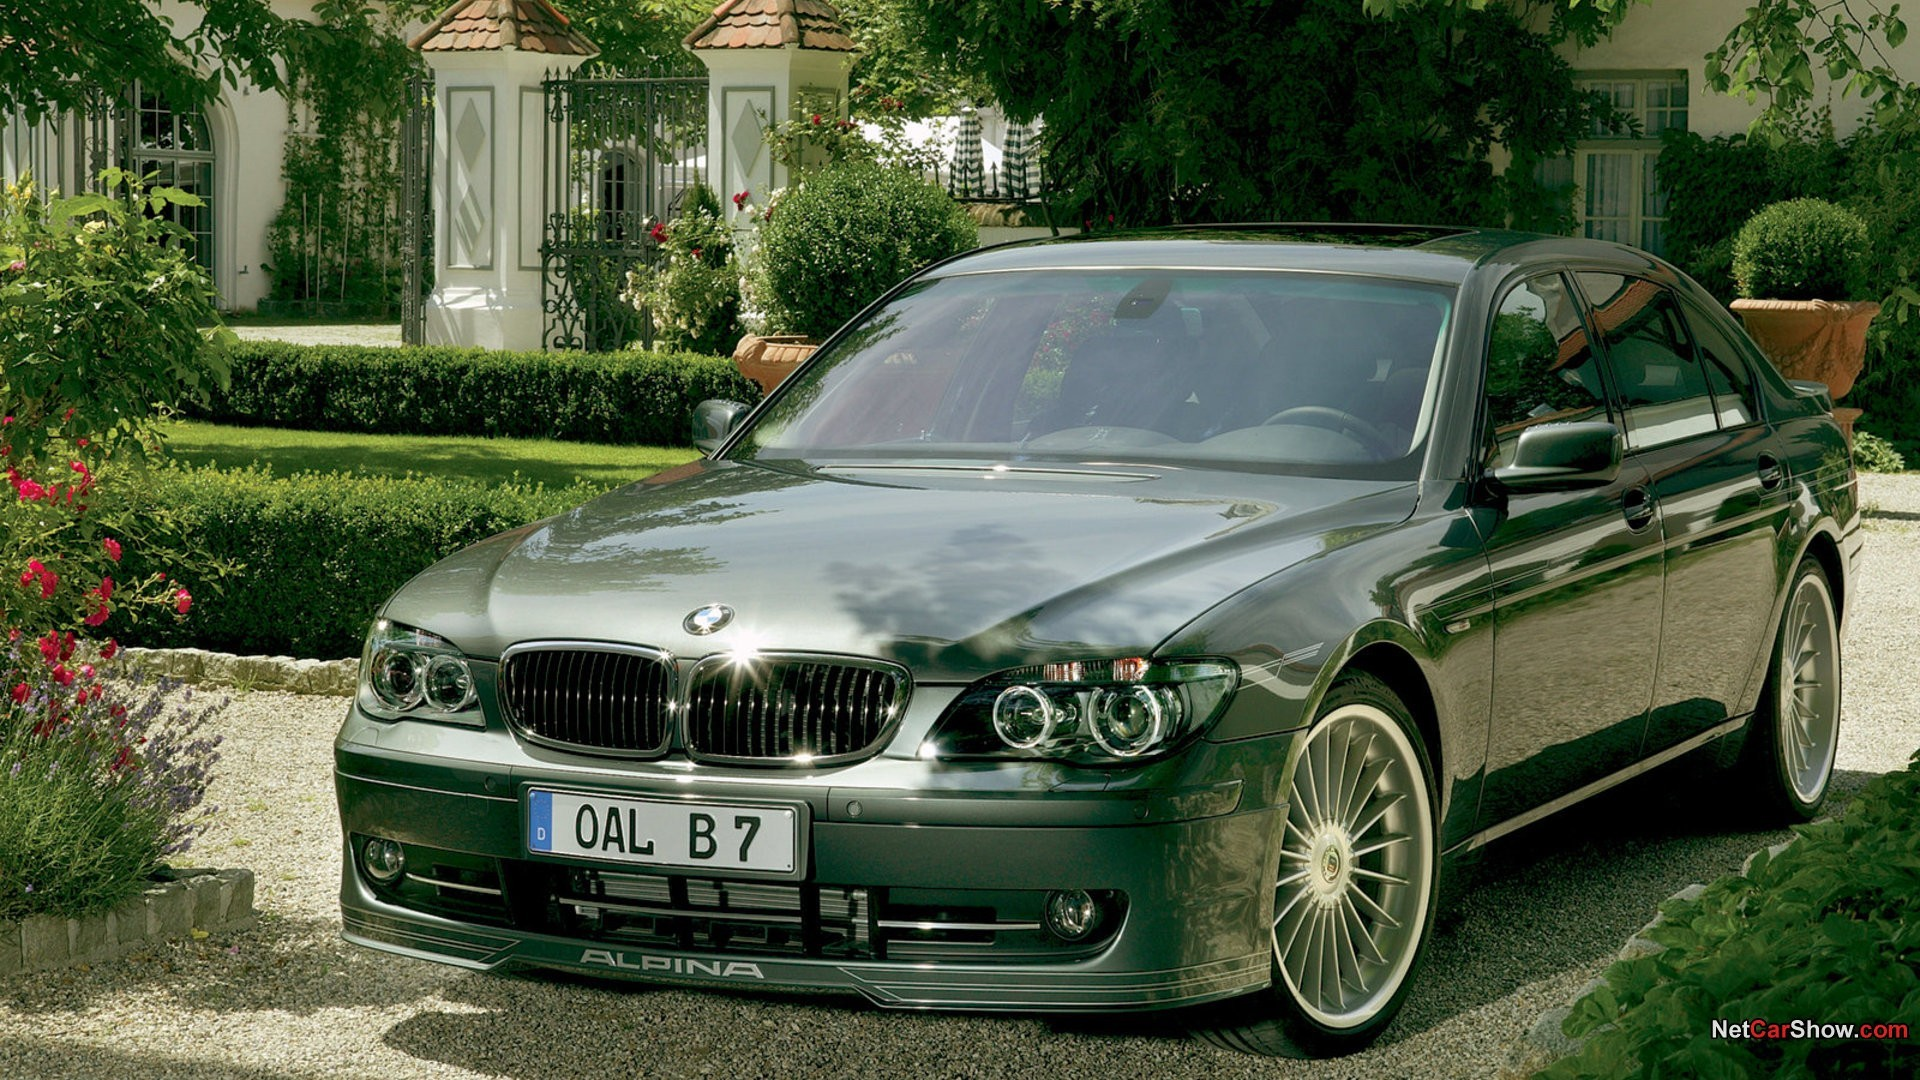 BMW cars alpina HD Wallpaper